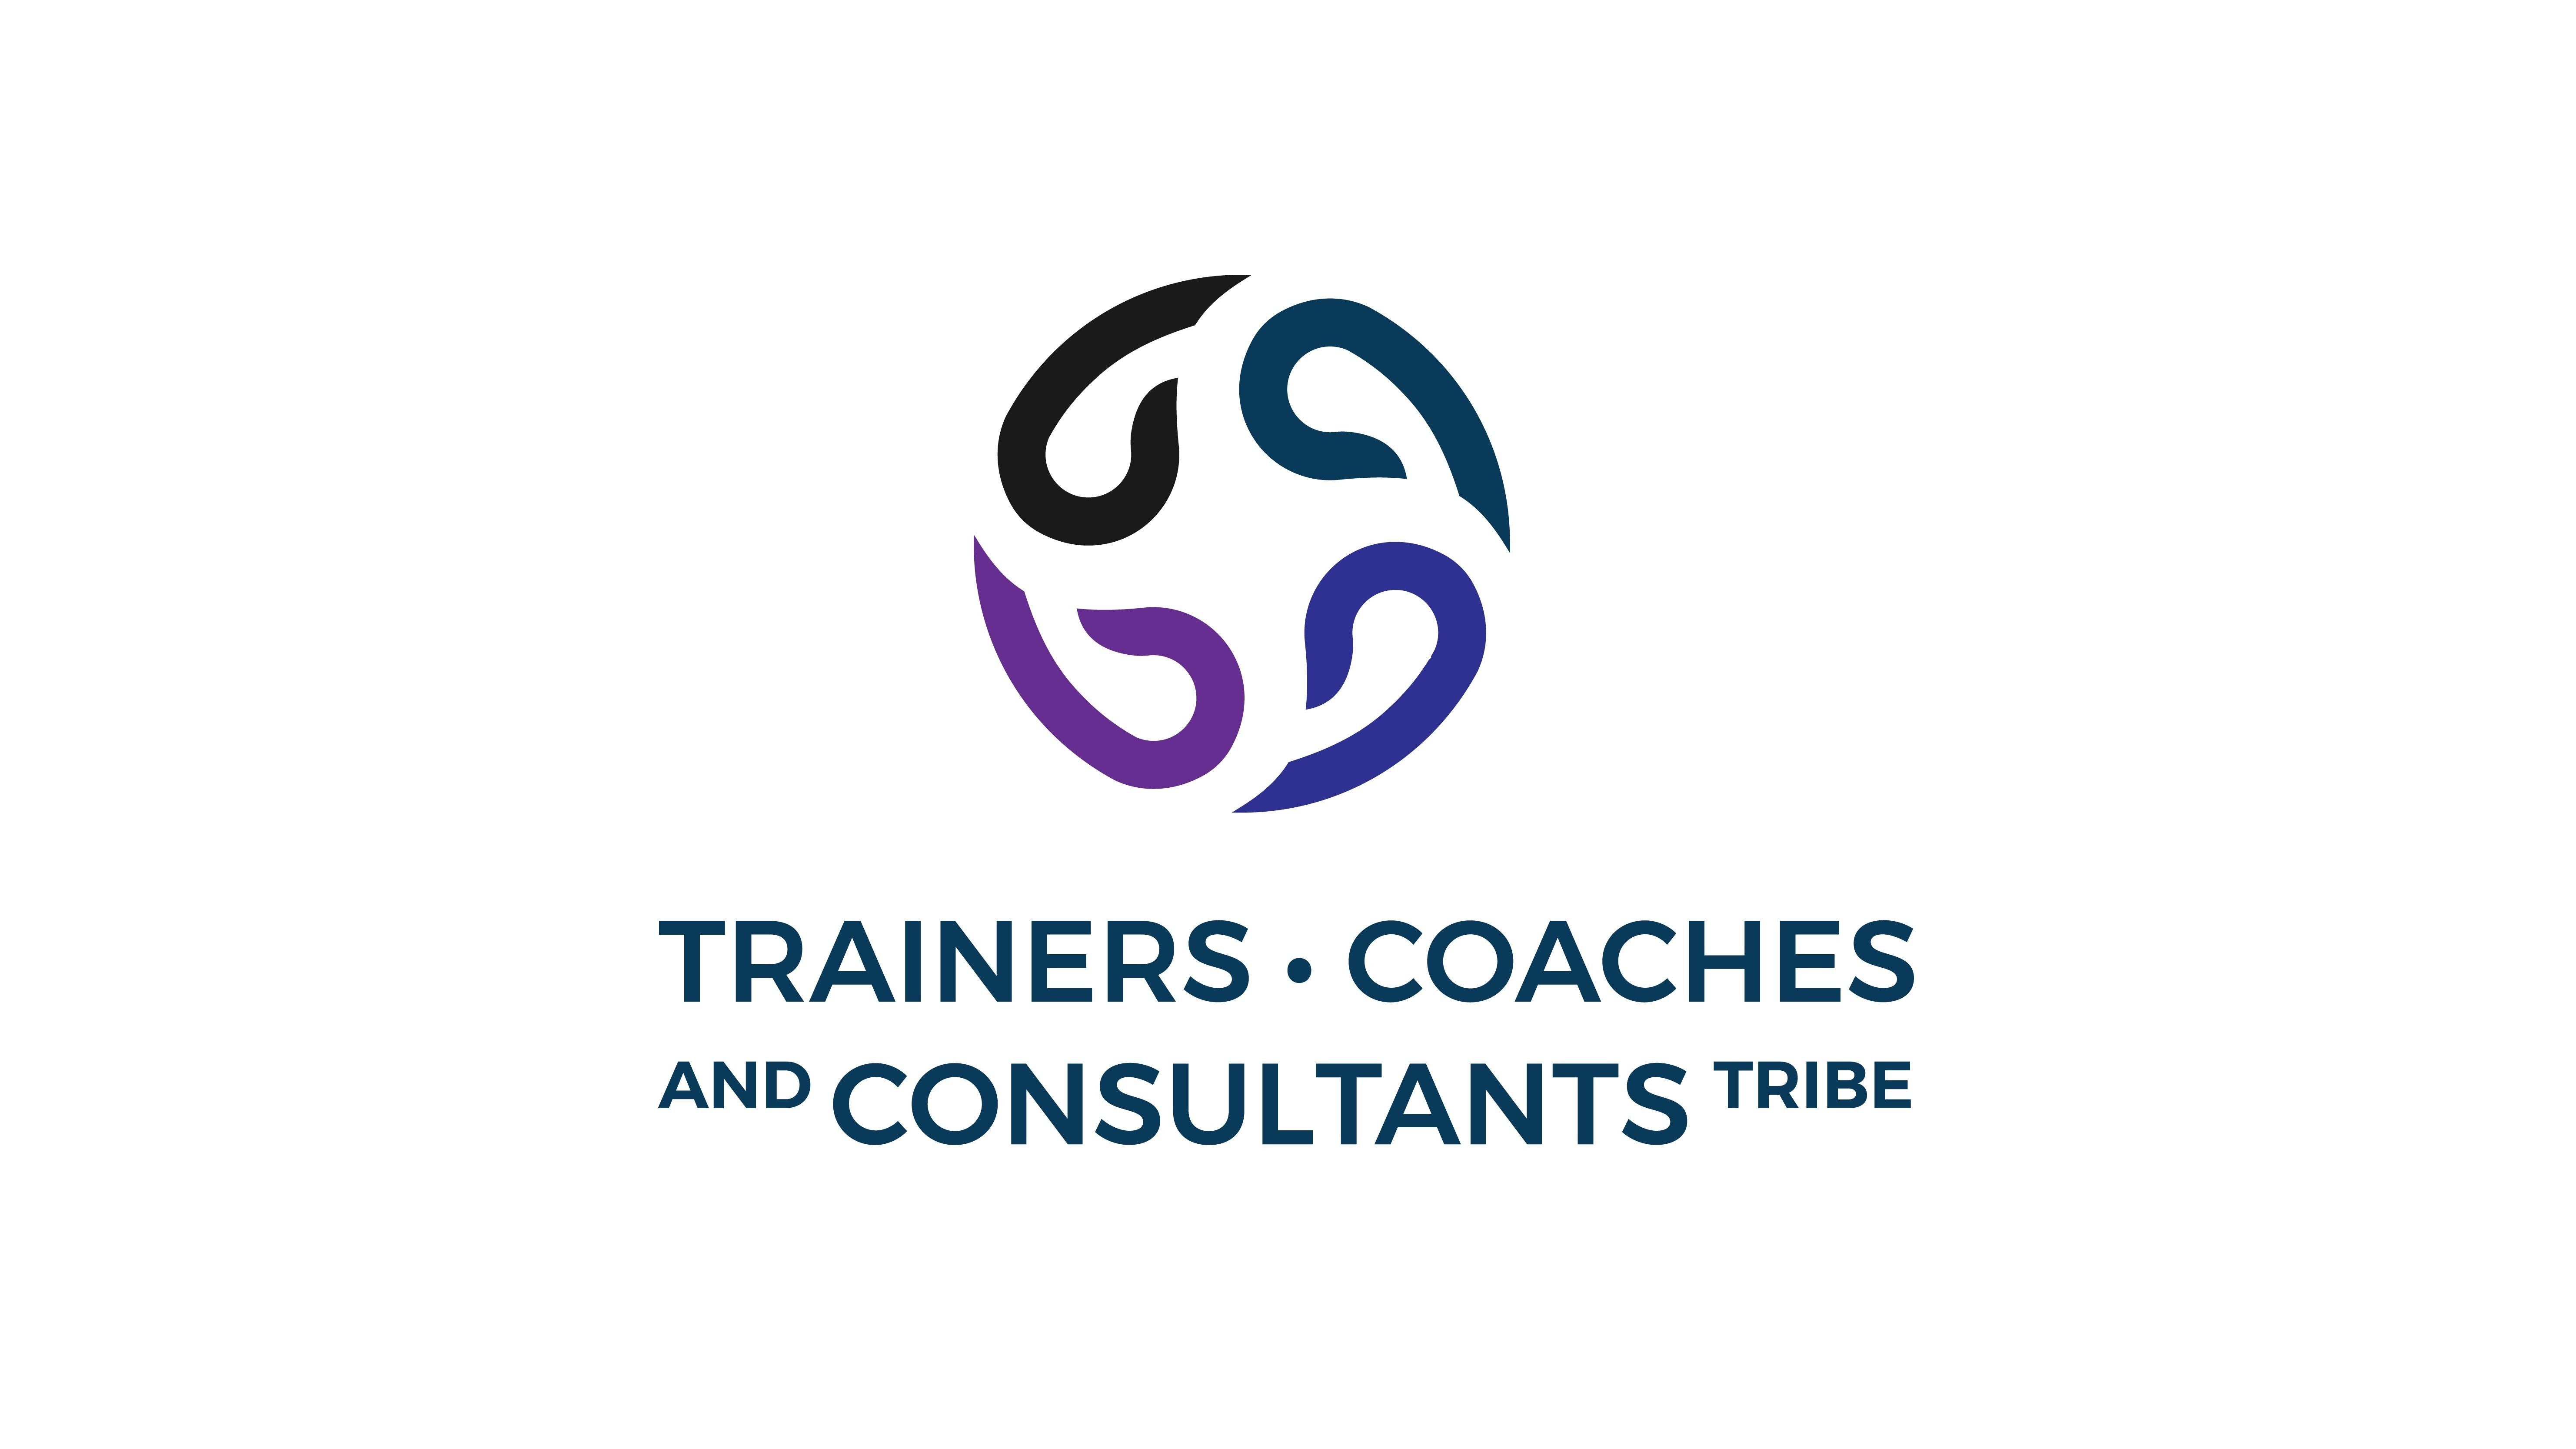 Trainers, Coaches and Consultants Tribe